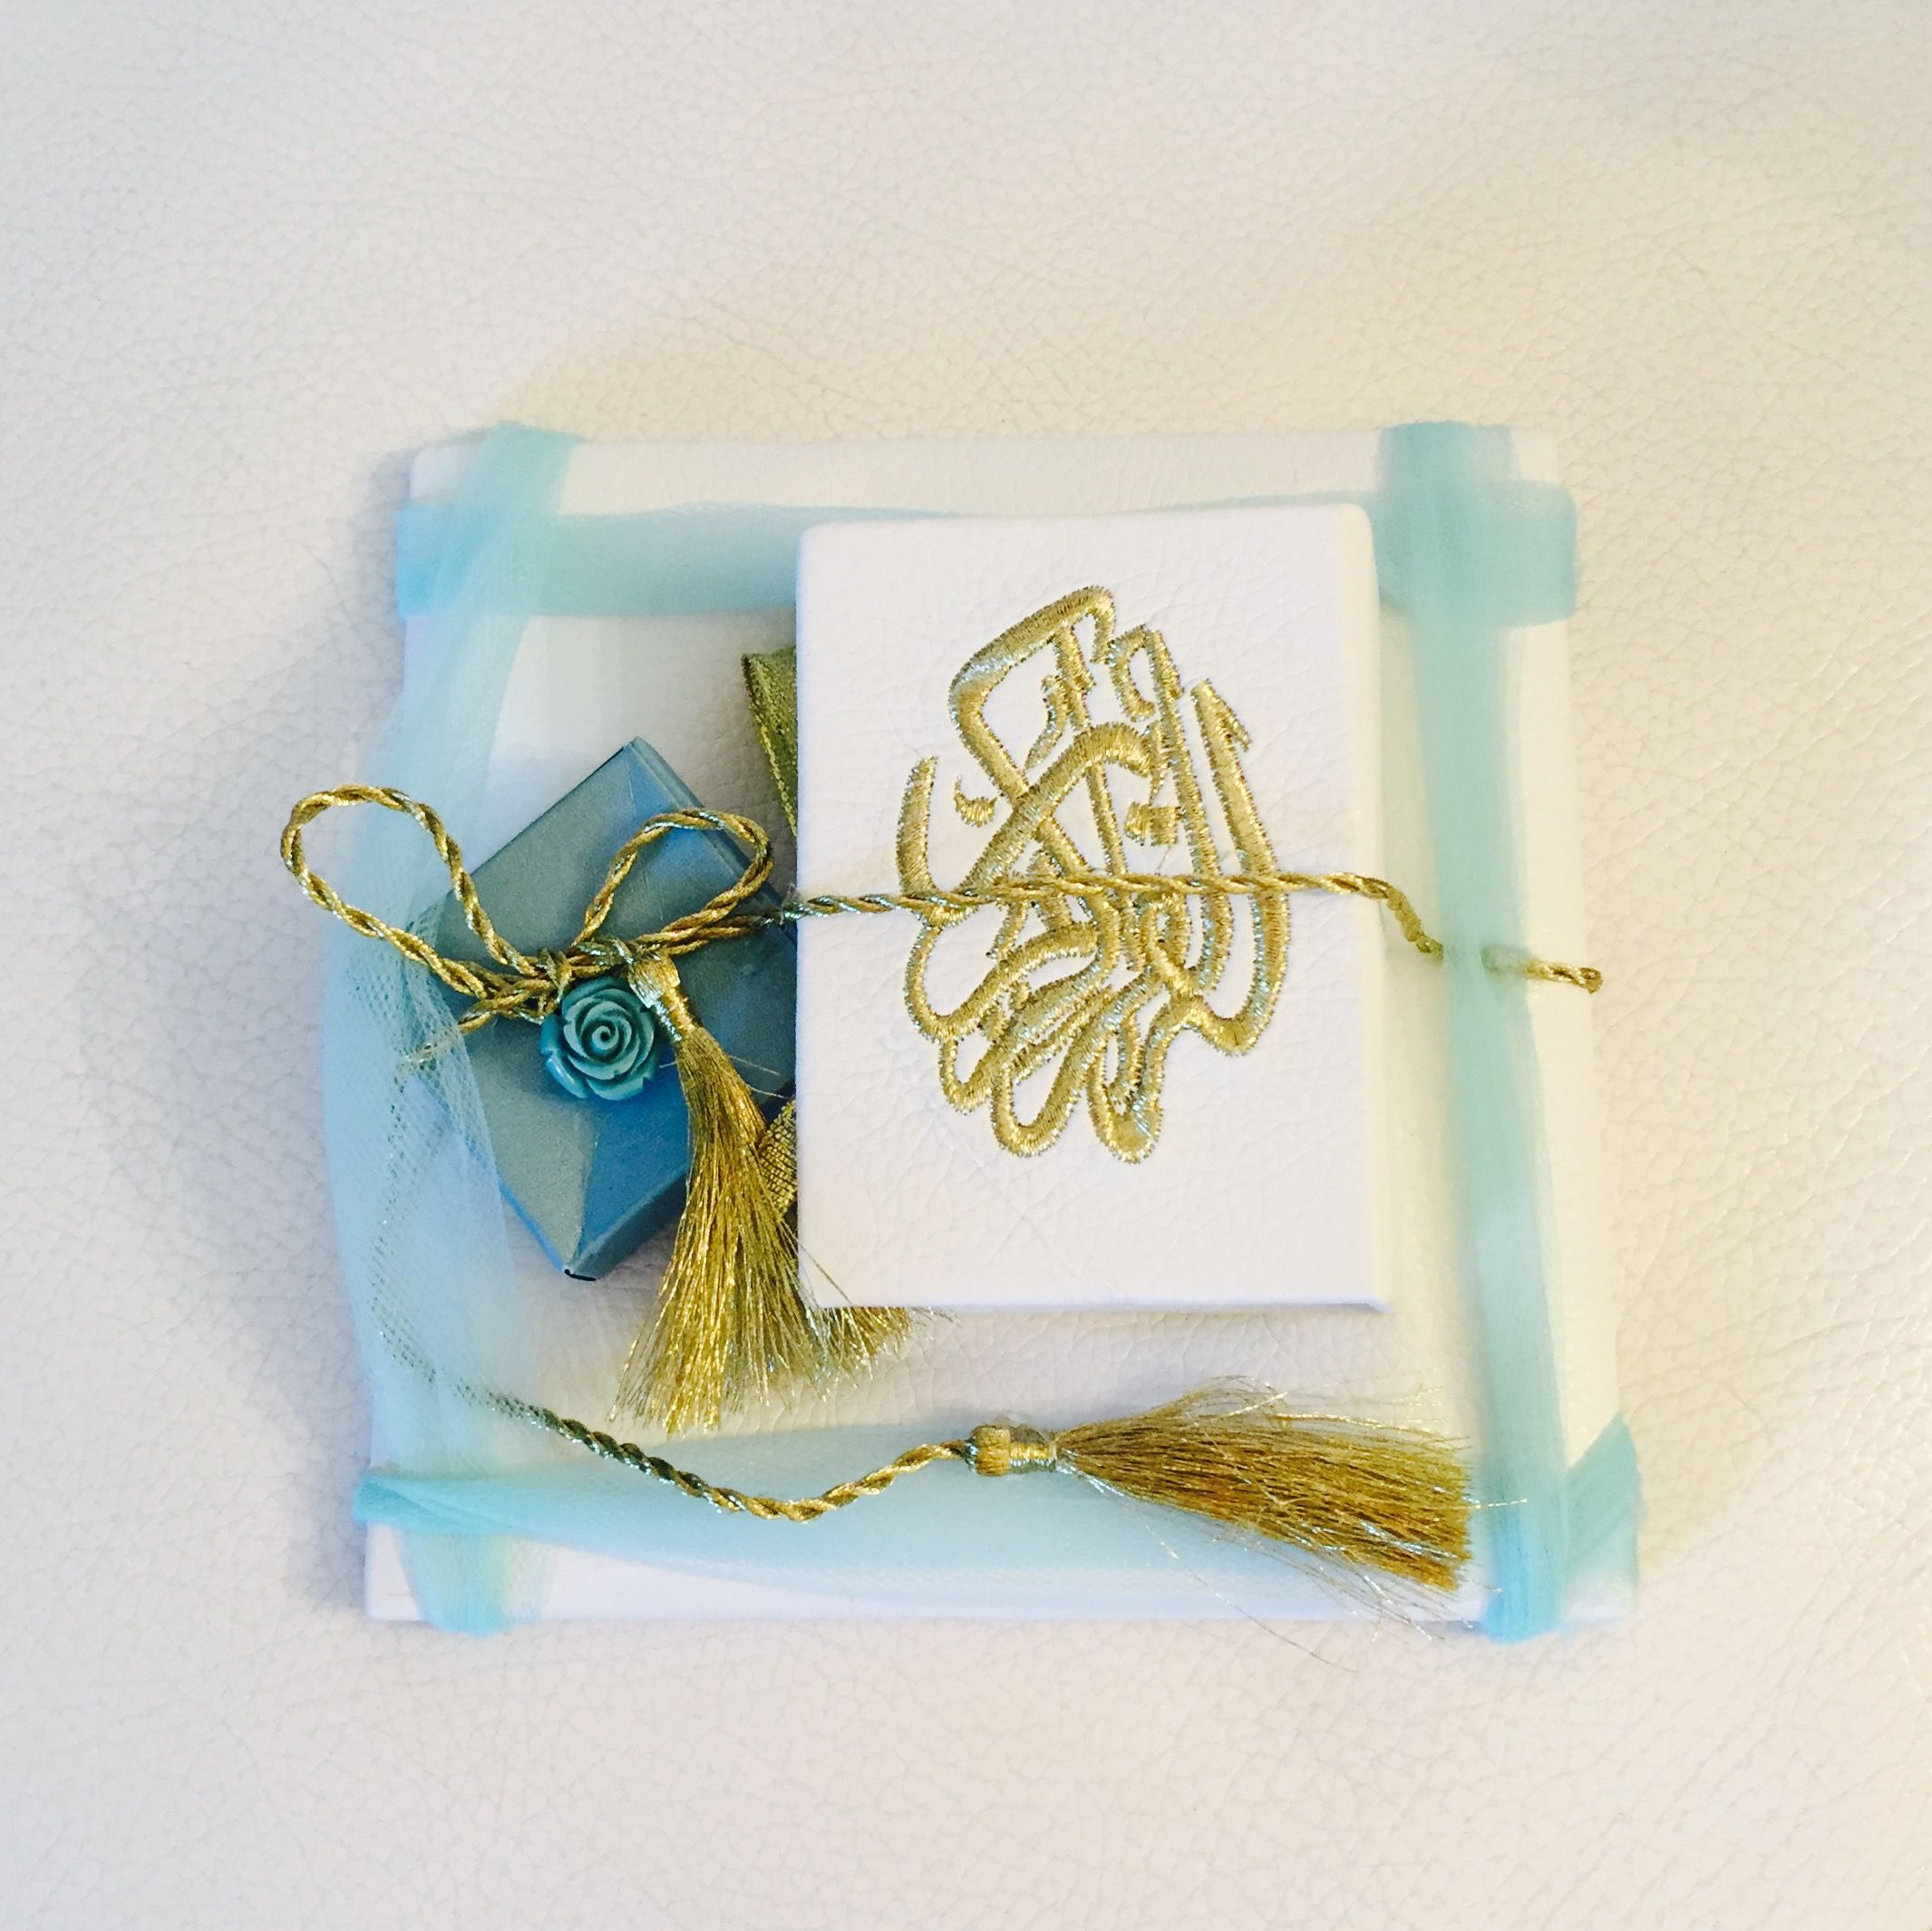 Pin by Ivory favours on Quran favours | Pinterest | Quran and Favors